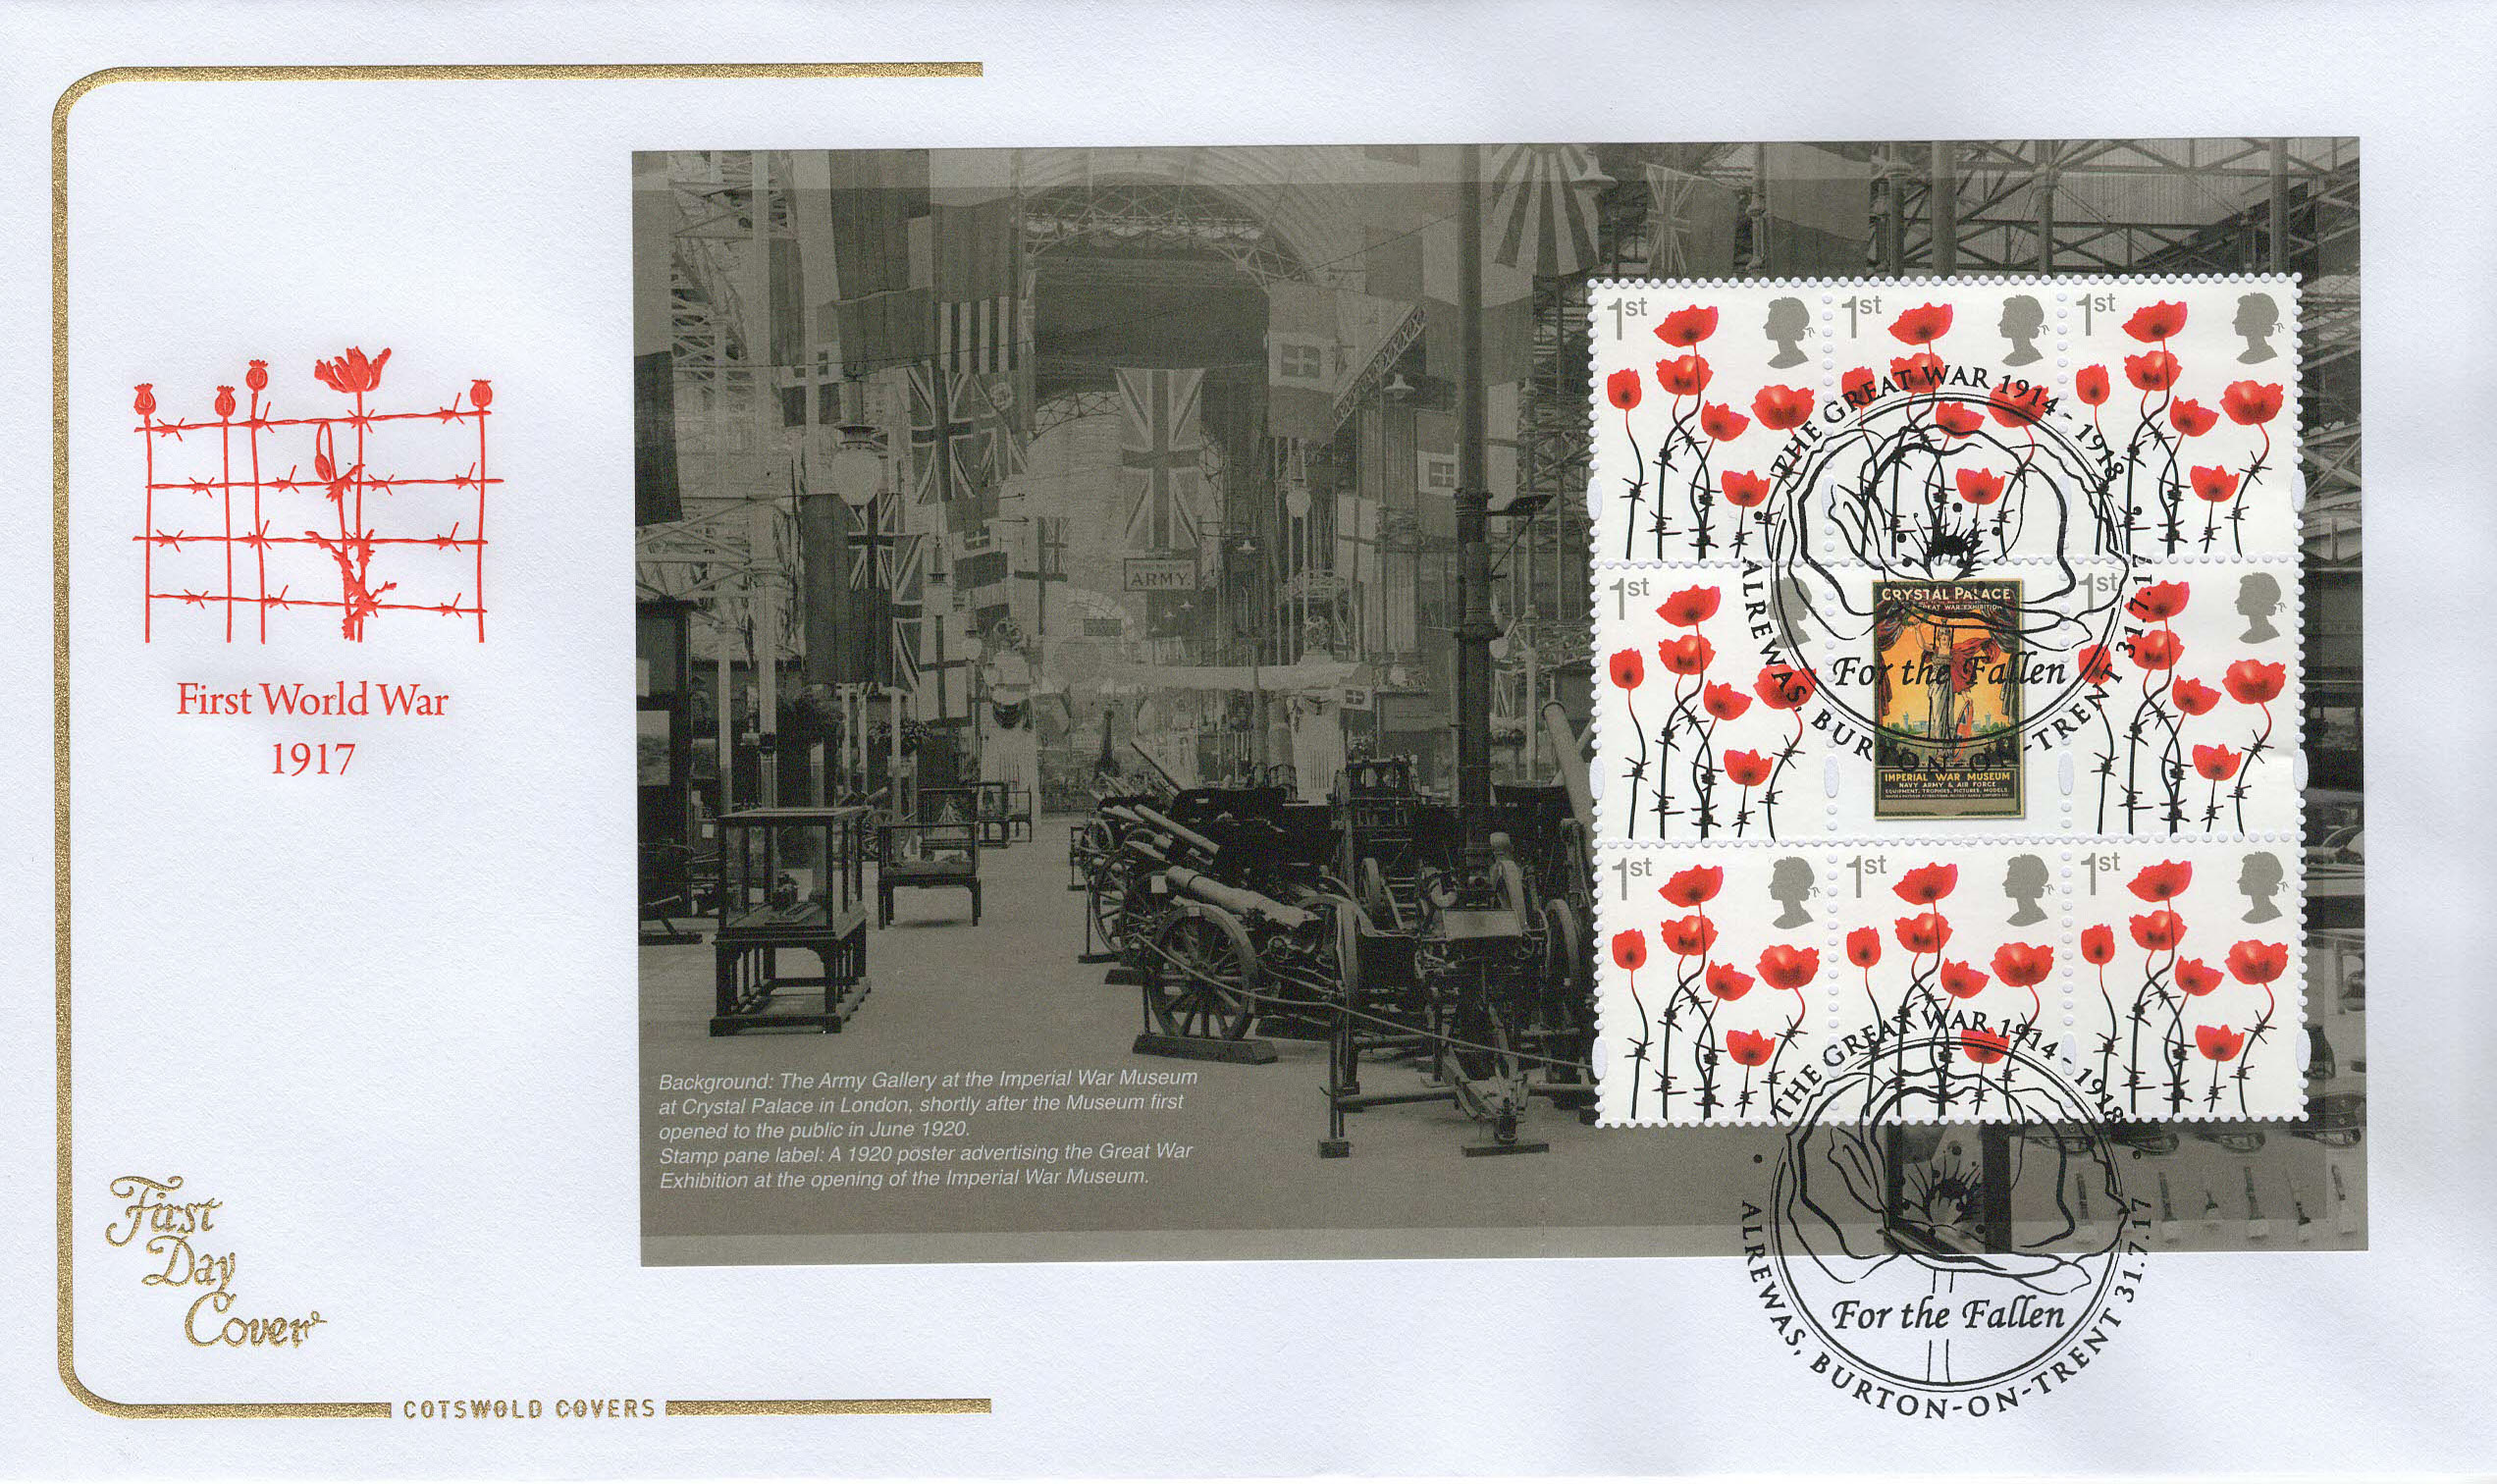 Cots-1st-WW-1917-Panes-2-4-from-PSB-FDC-July-2017-1